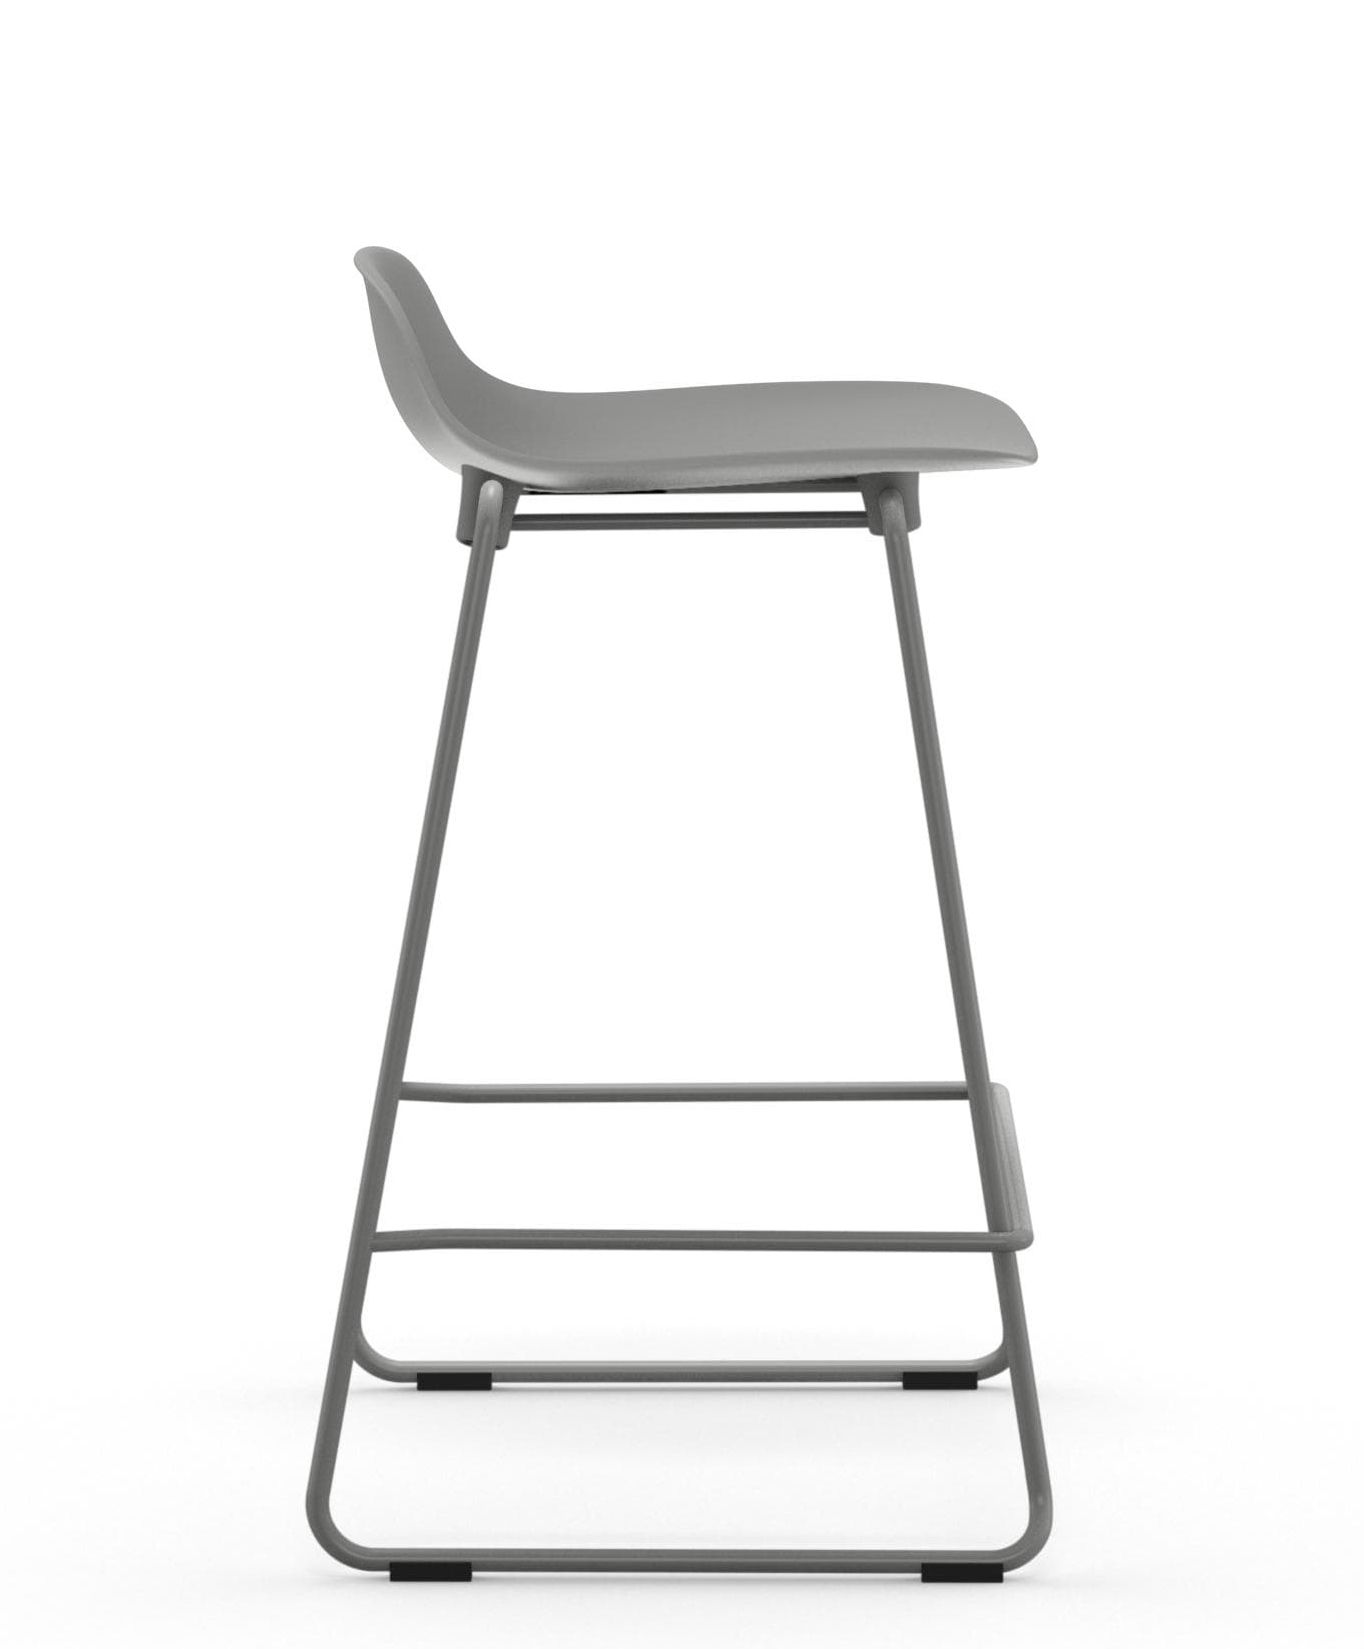 Tabourets Bar Empilables Tabouret De Bar Form Empilable Pied Métal H 65 Cm Normann Copenhagen